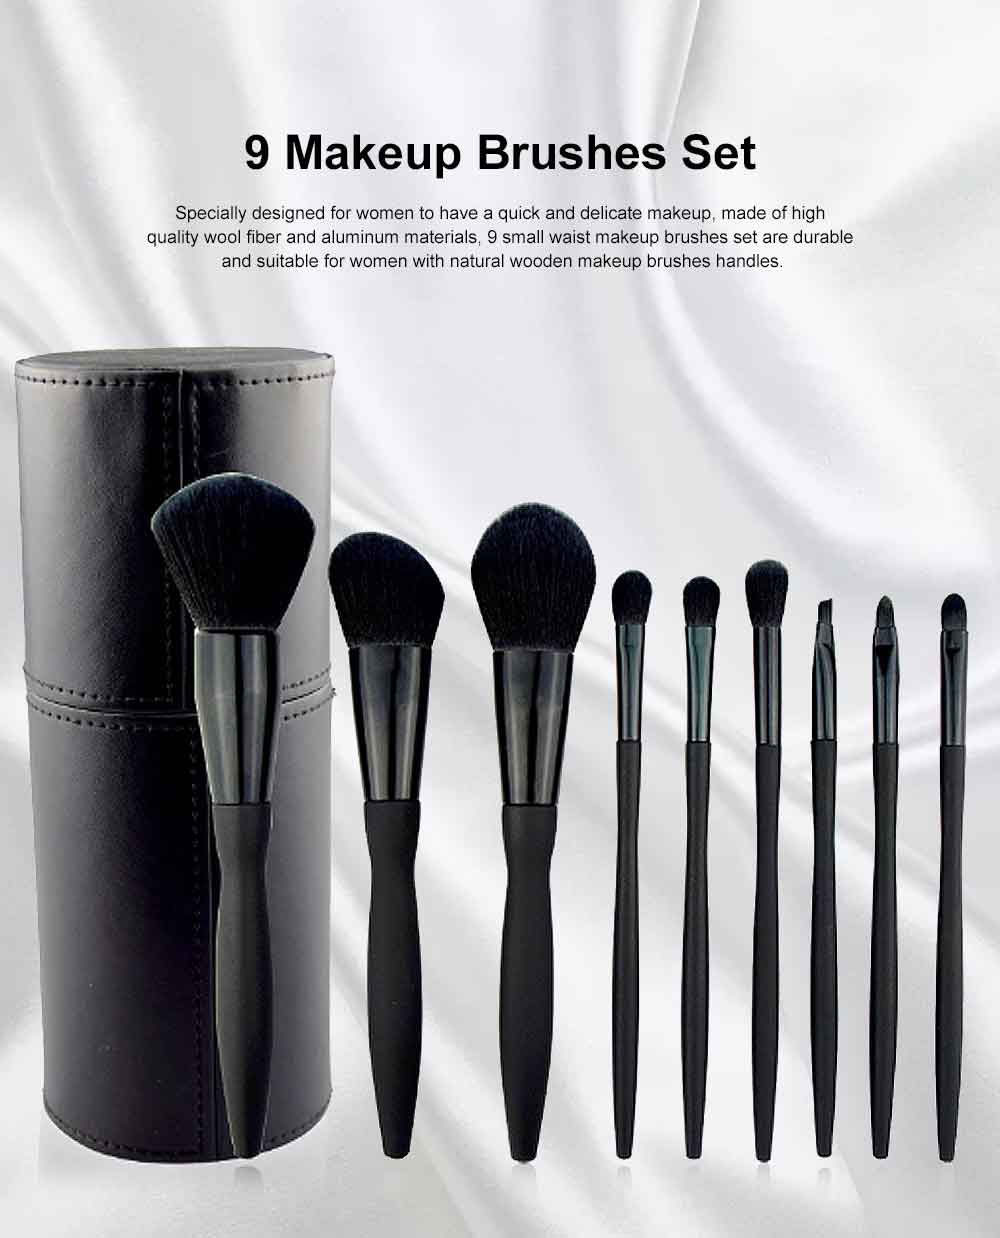 9 Makeup Brushes Set, Multifunctional Brushes with Small Waist Shape, Cosmetic Tools for Women 0